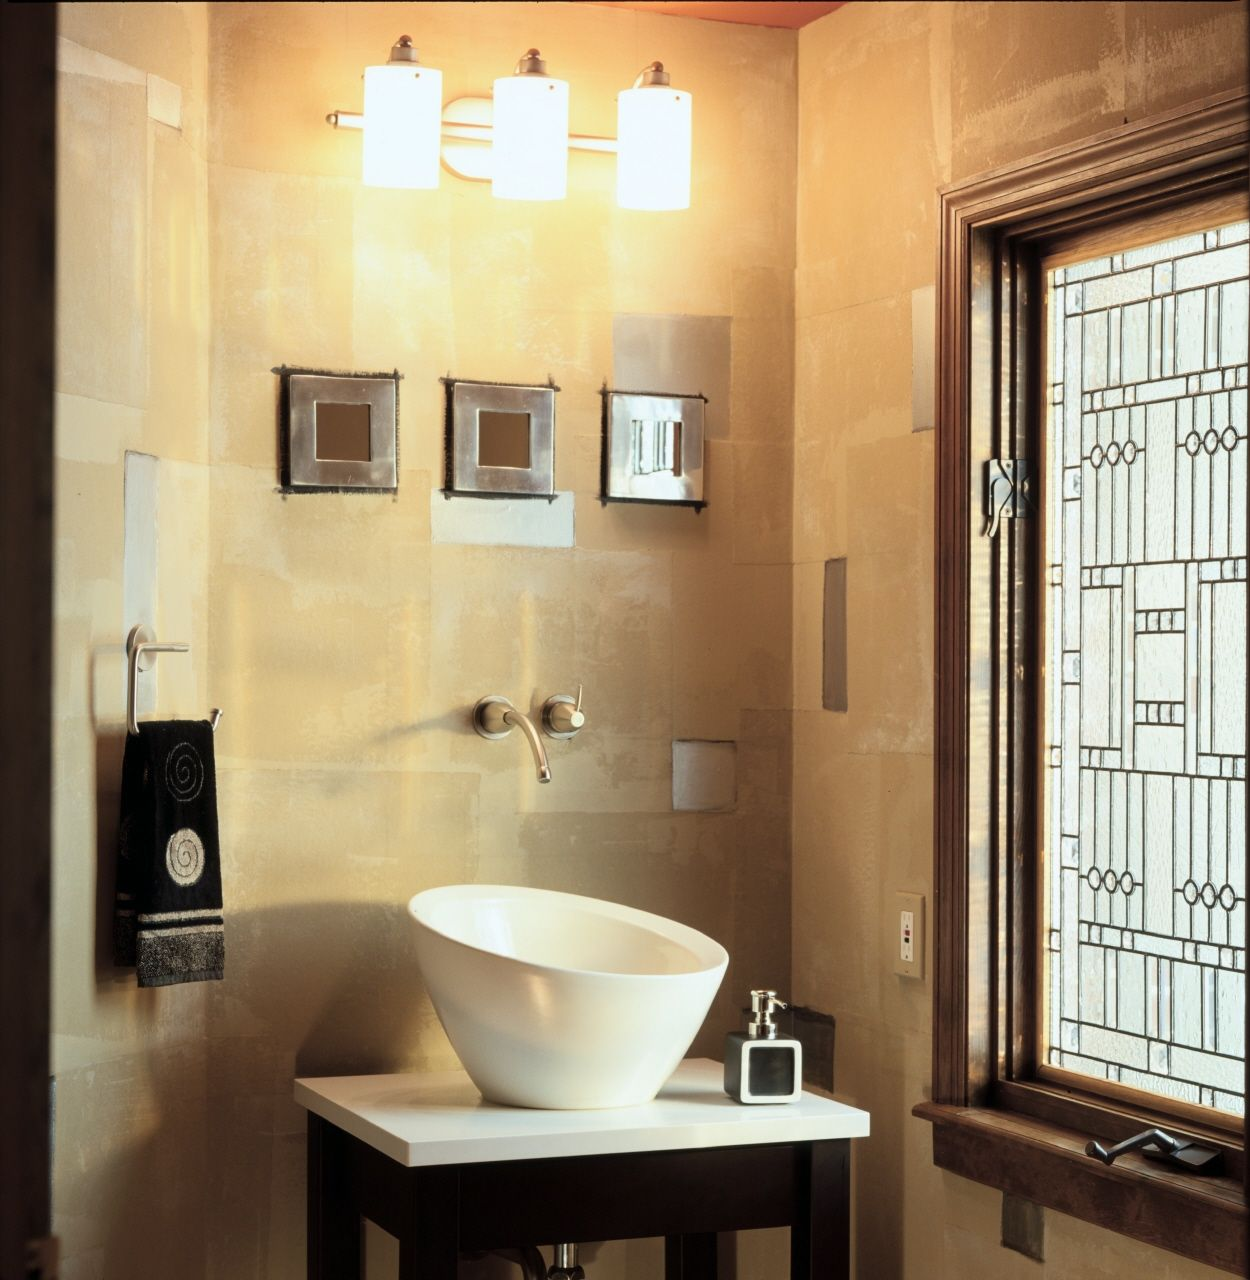 9 Great Design Ideas for Half Baths and Powder Rooms | Half baths ...